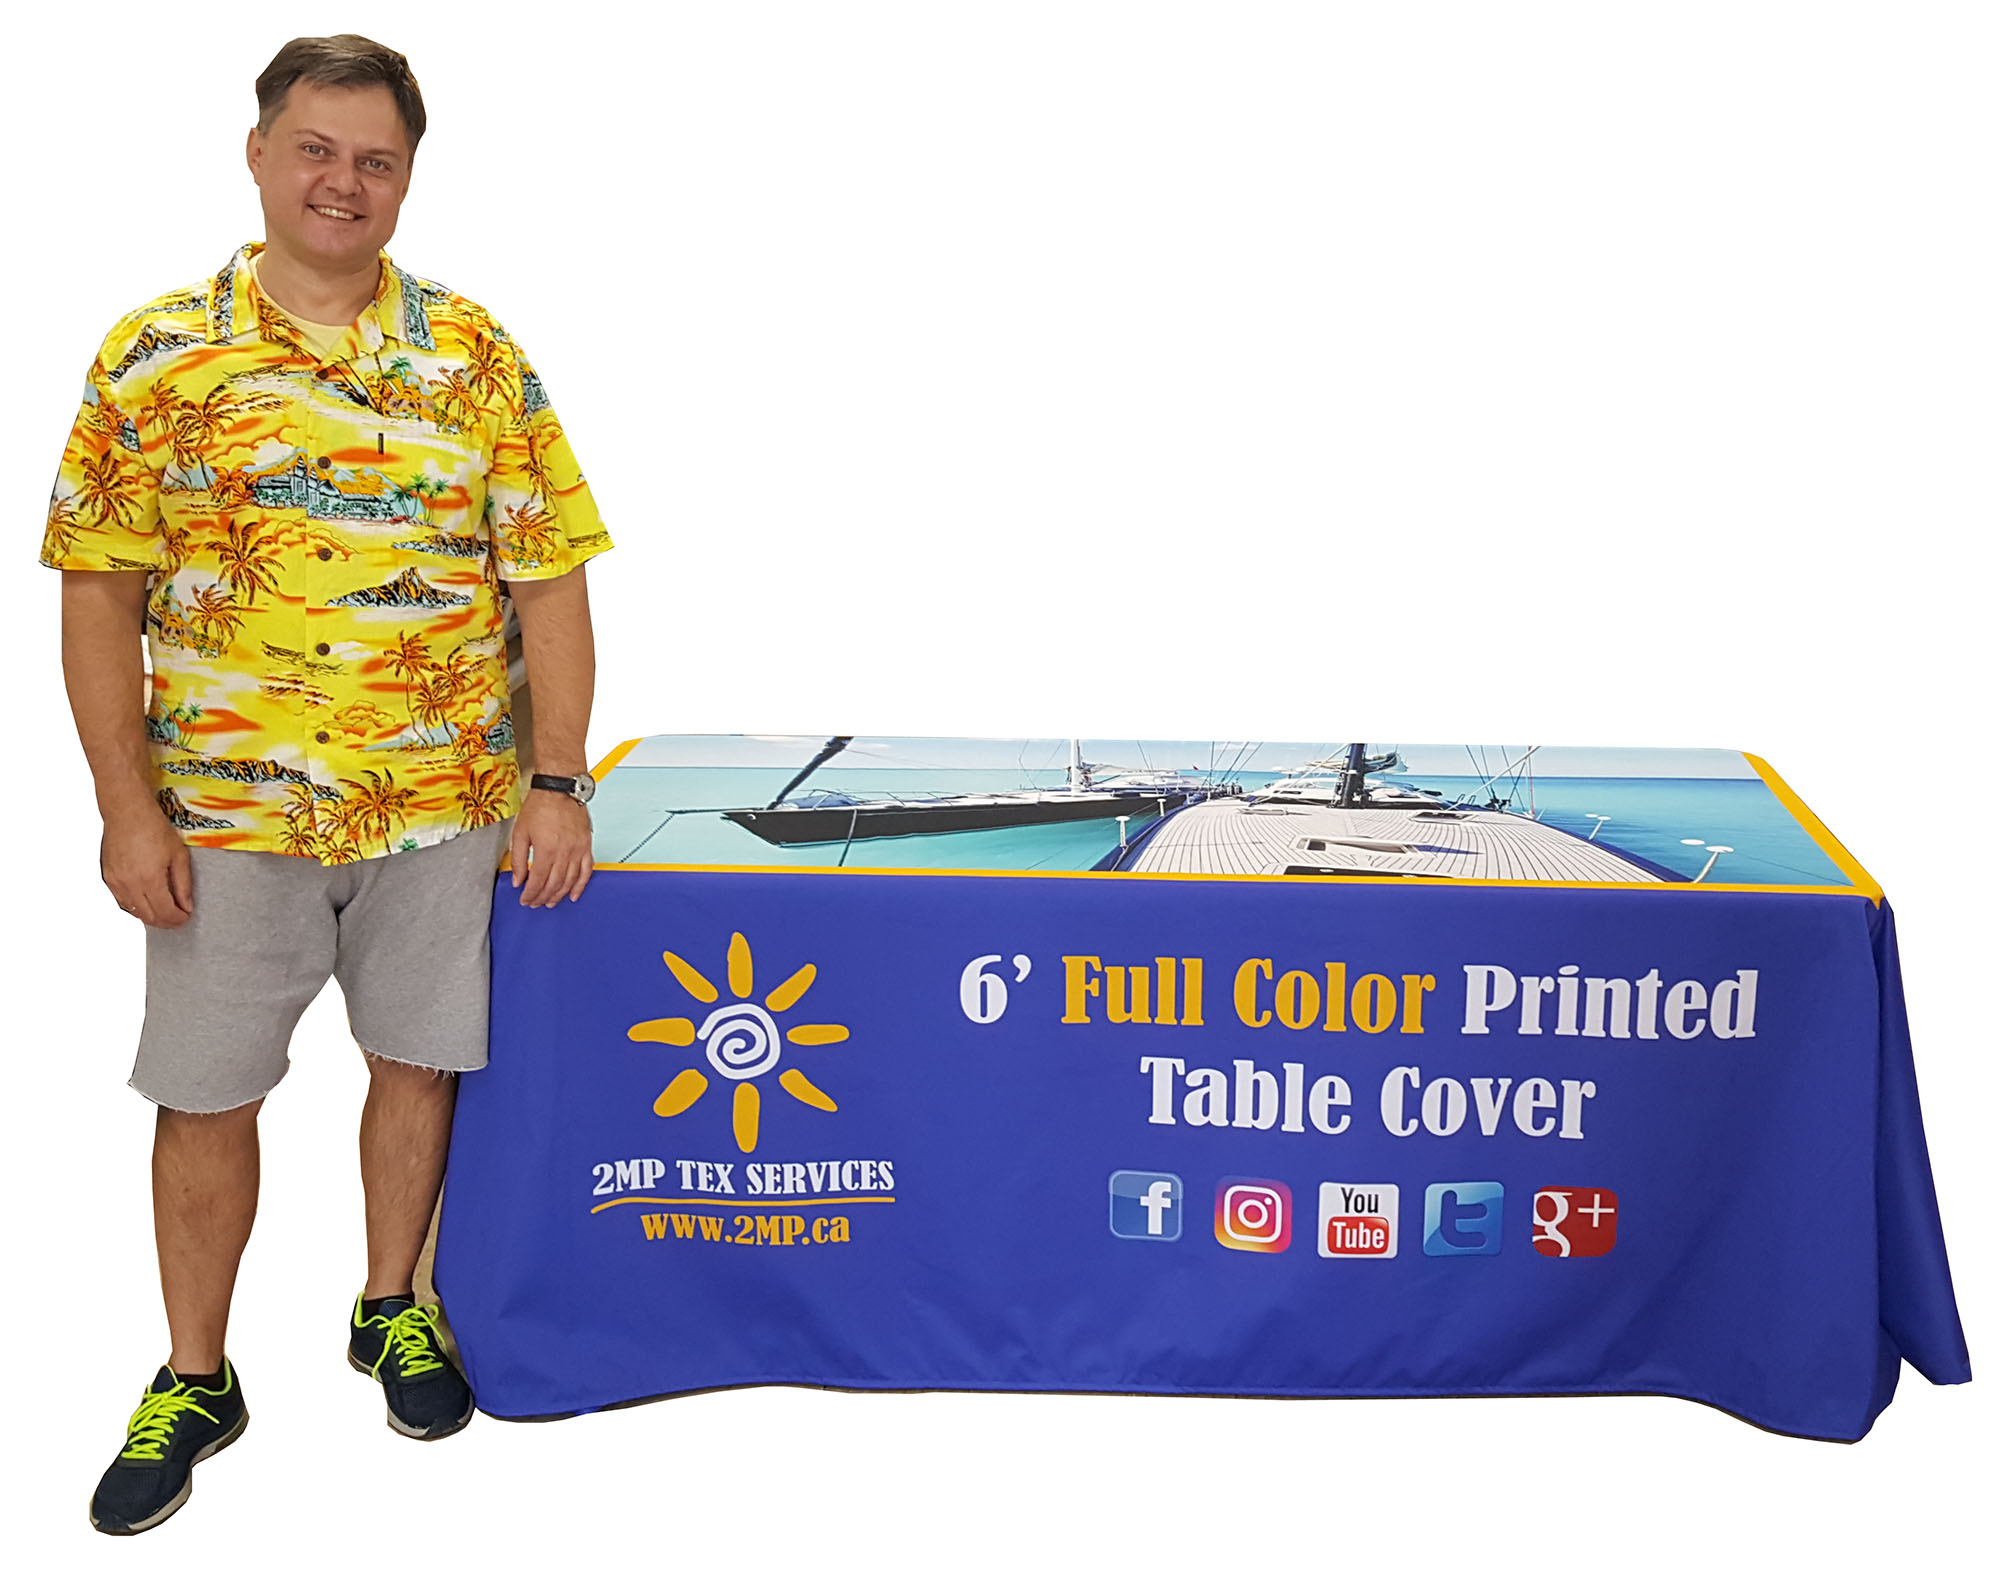 2 DAYS PRODUCTION - Custom Dye-Sublimation Printed Table Covers for Trade Show Marketing Event